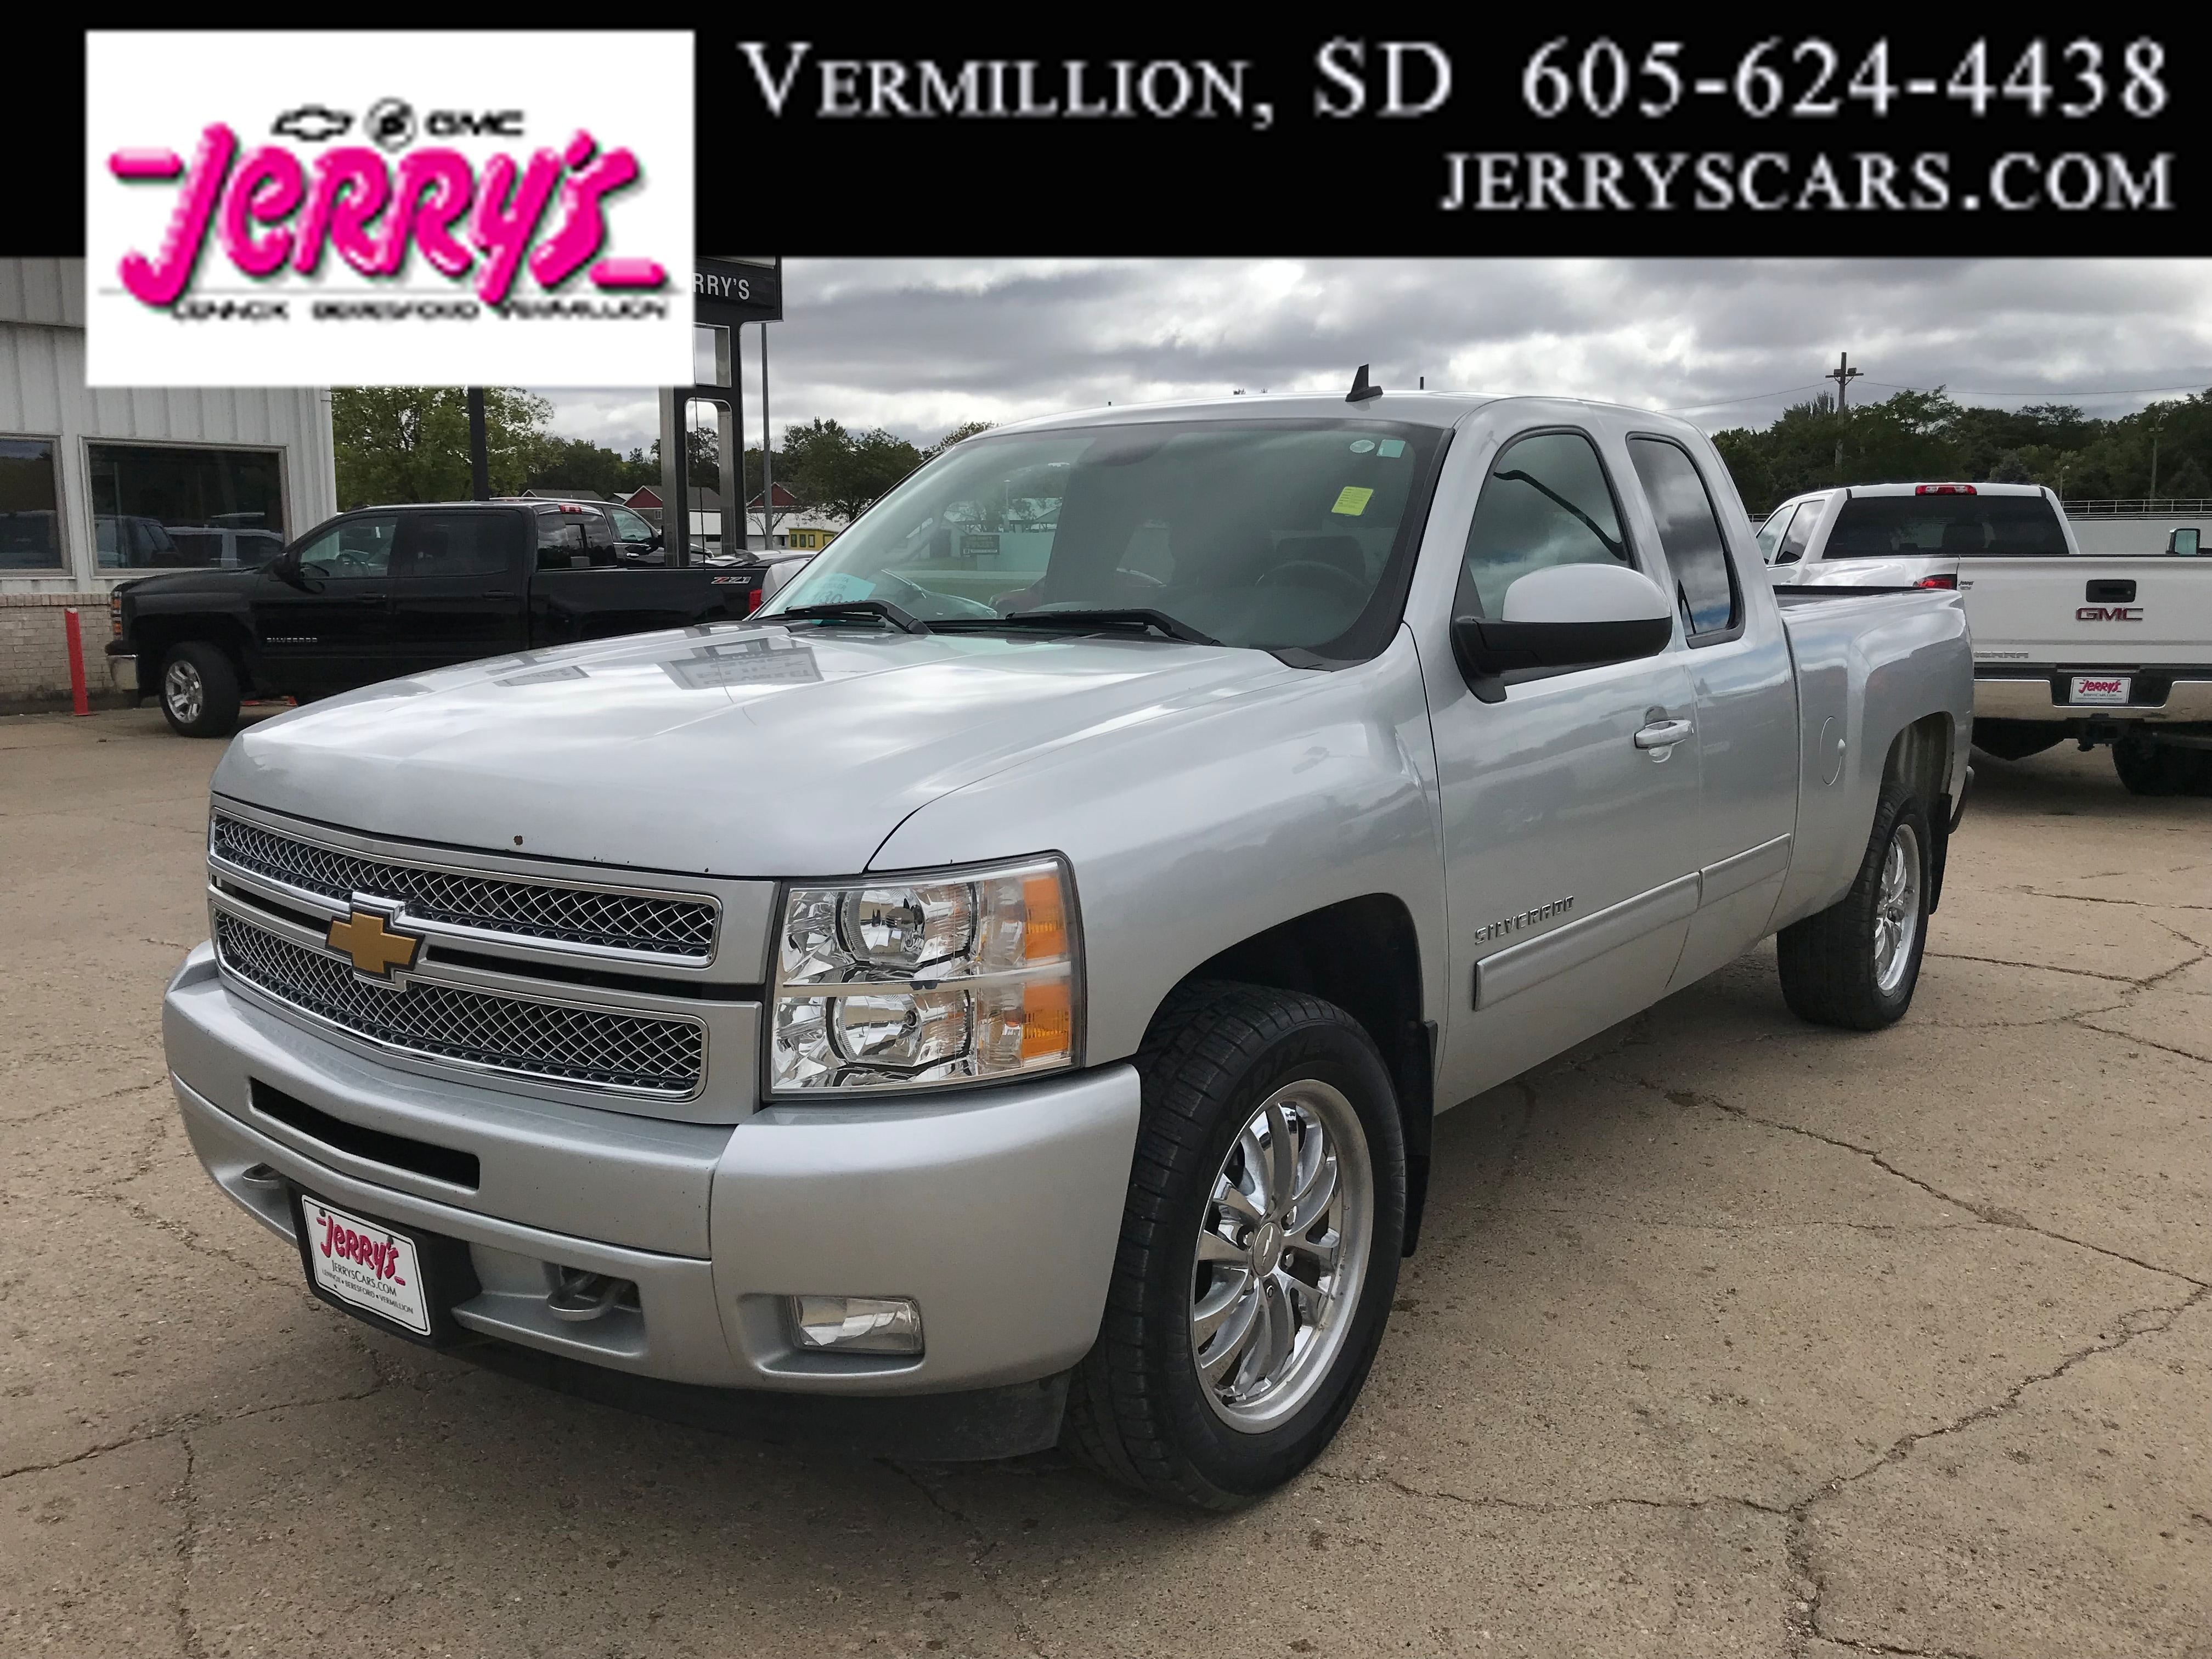 2013 Chevrolet Silverado 1500 LT 4X4 LEATHER Truck Extended Cab